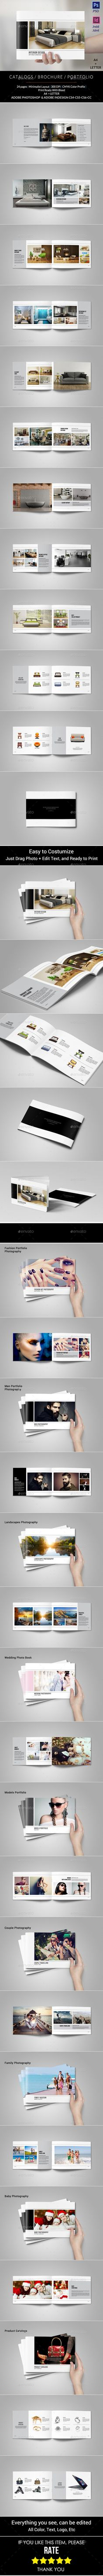 Portfolio Brochure Template #design Download: http://graphicriver.net/item/portfolio-brochure-template/12650518?ref=ksioks